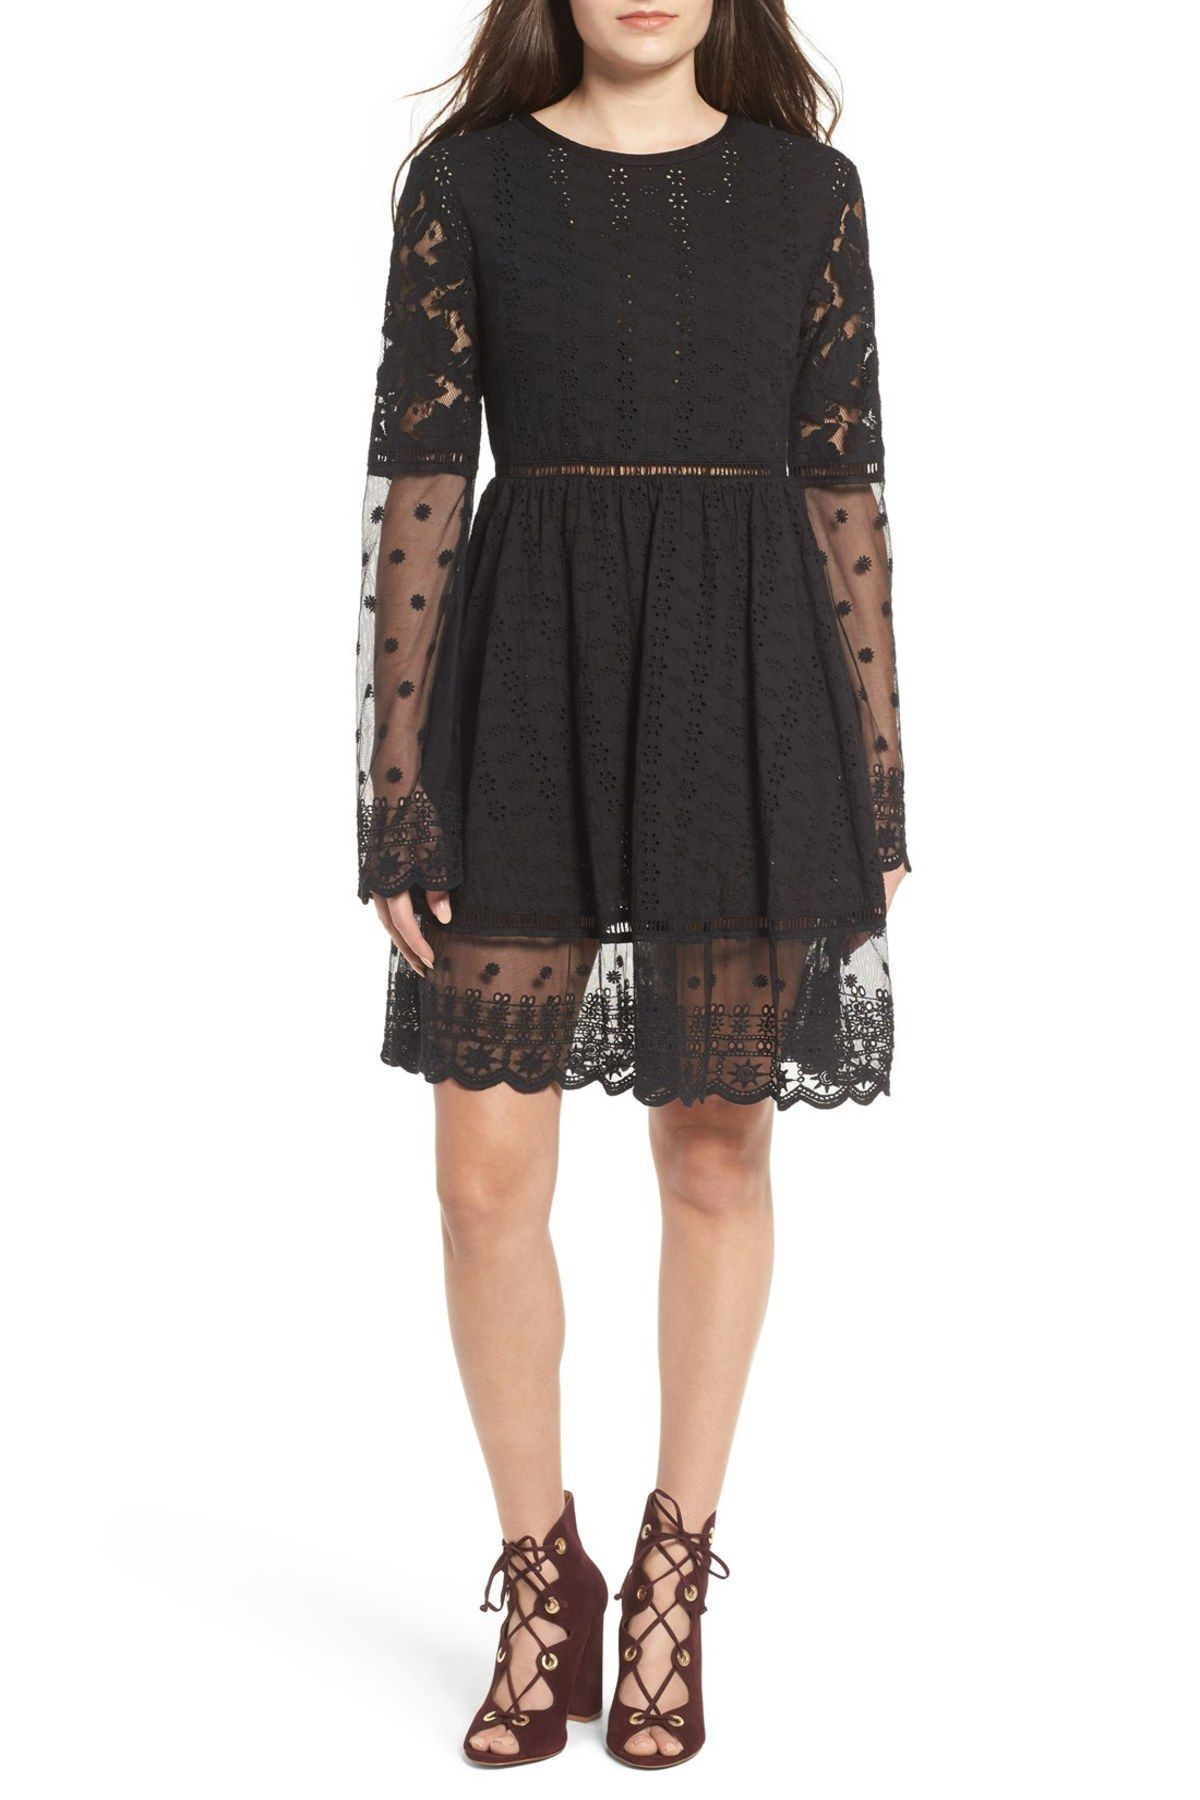 Crystal Visions Lace u Eyelet Dress  Products